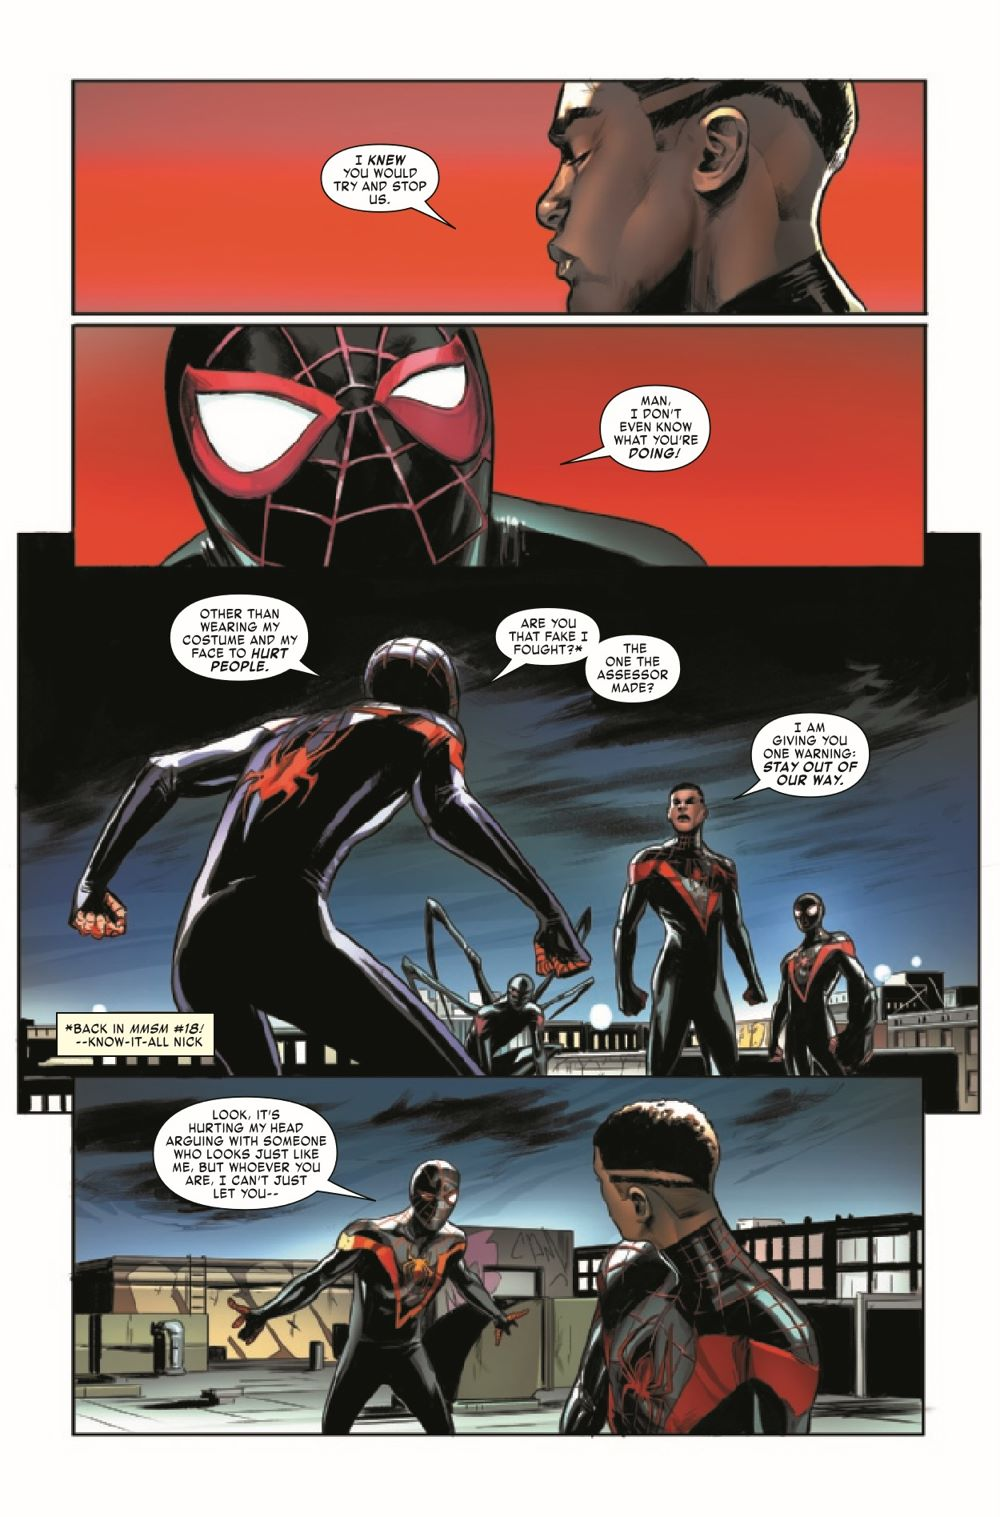 MMSM2018026_Preview-3 ComicList Previews: MILES MORALES SPIDER-MAN #26